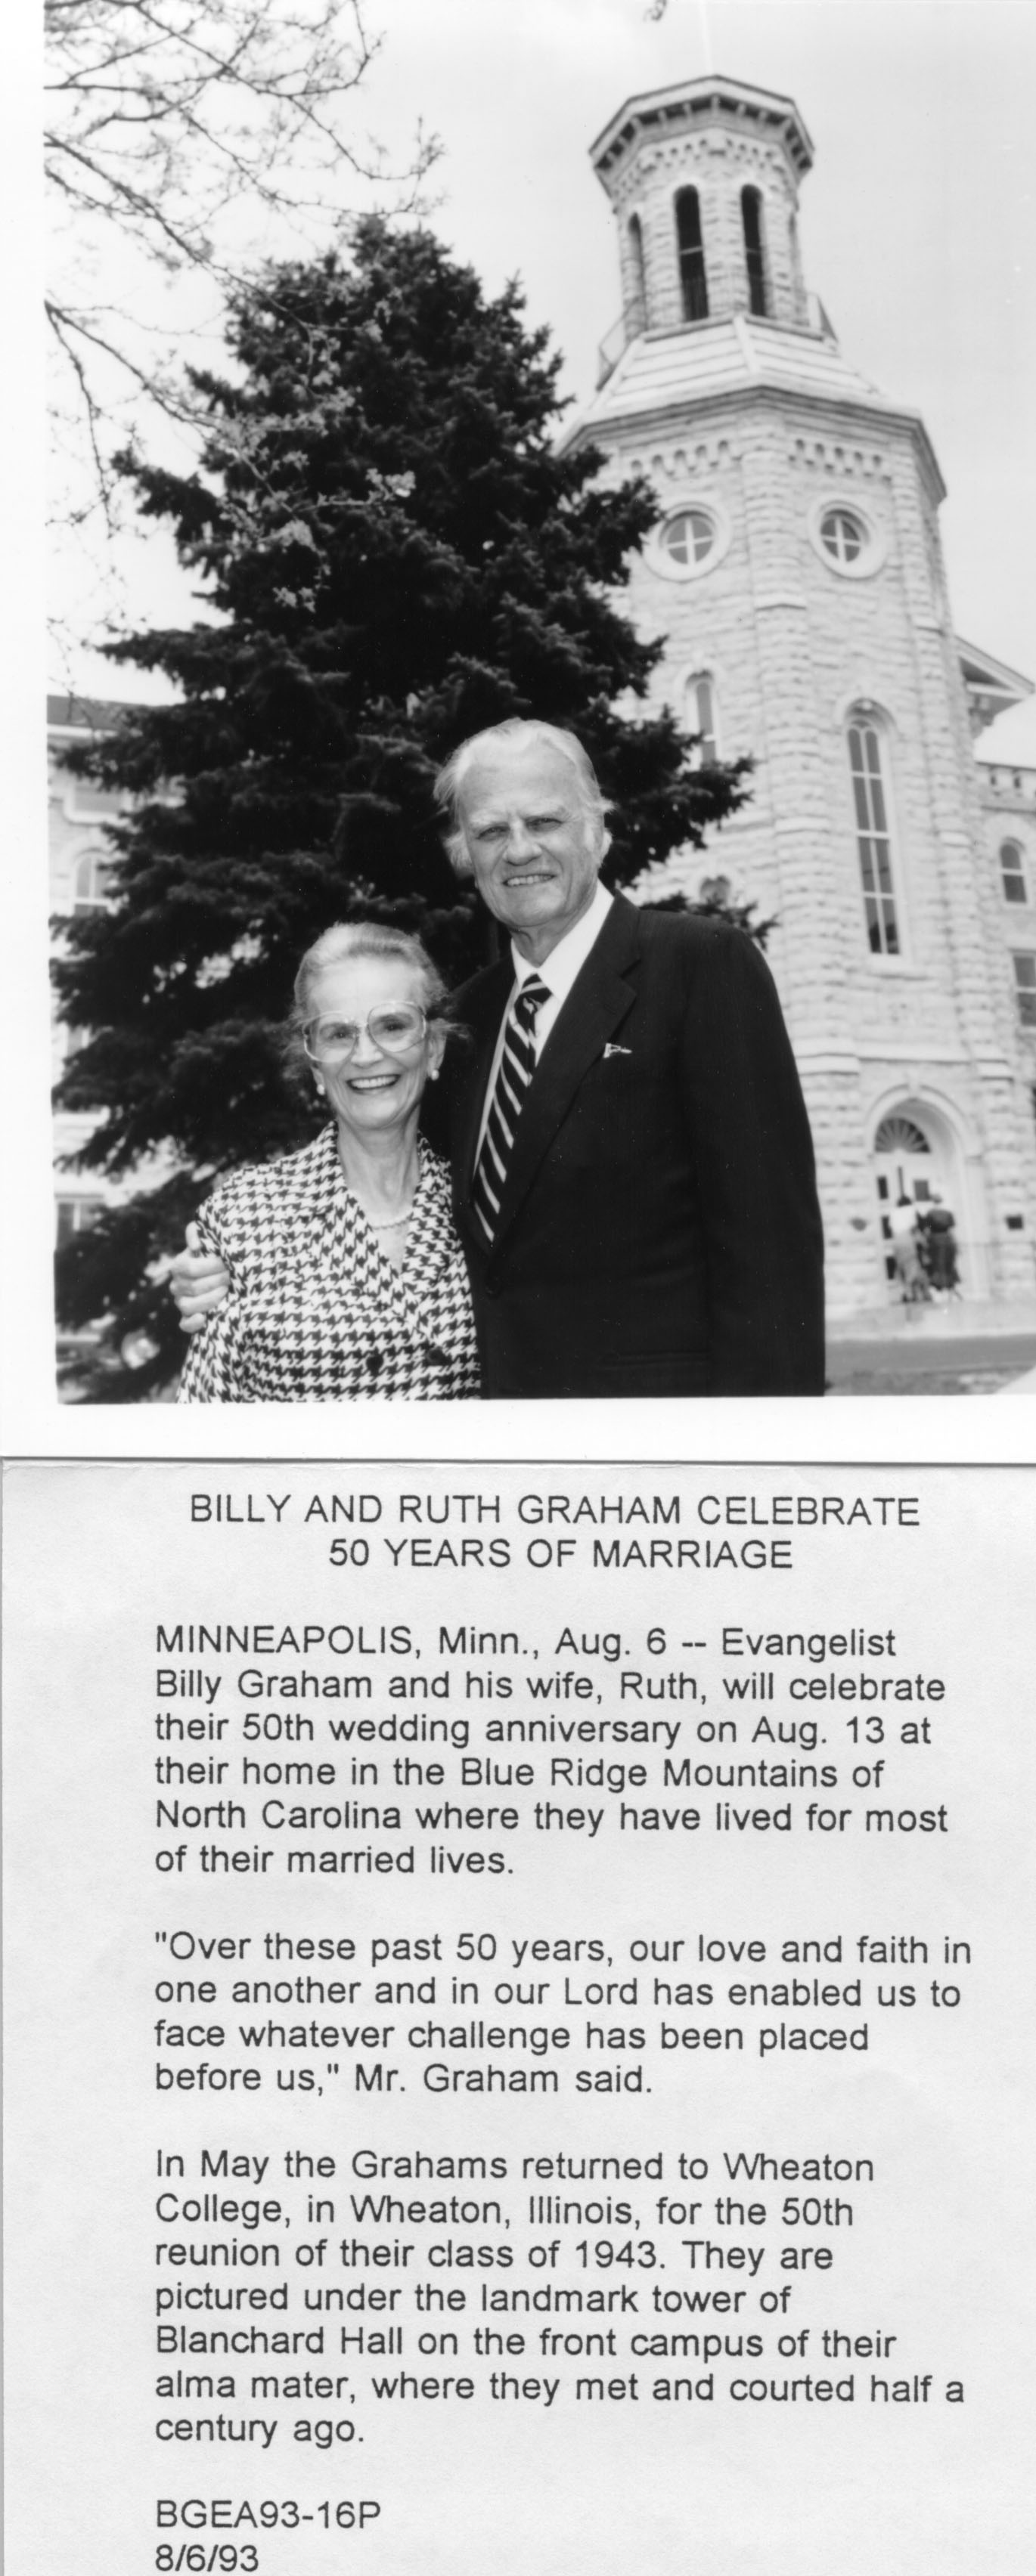 Photo File: Graham, William F. with Graham, Ruth